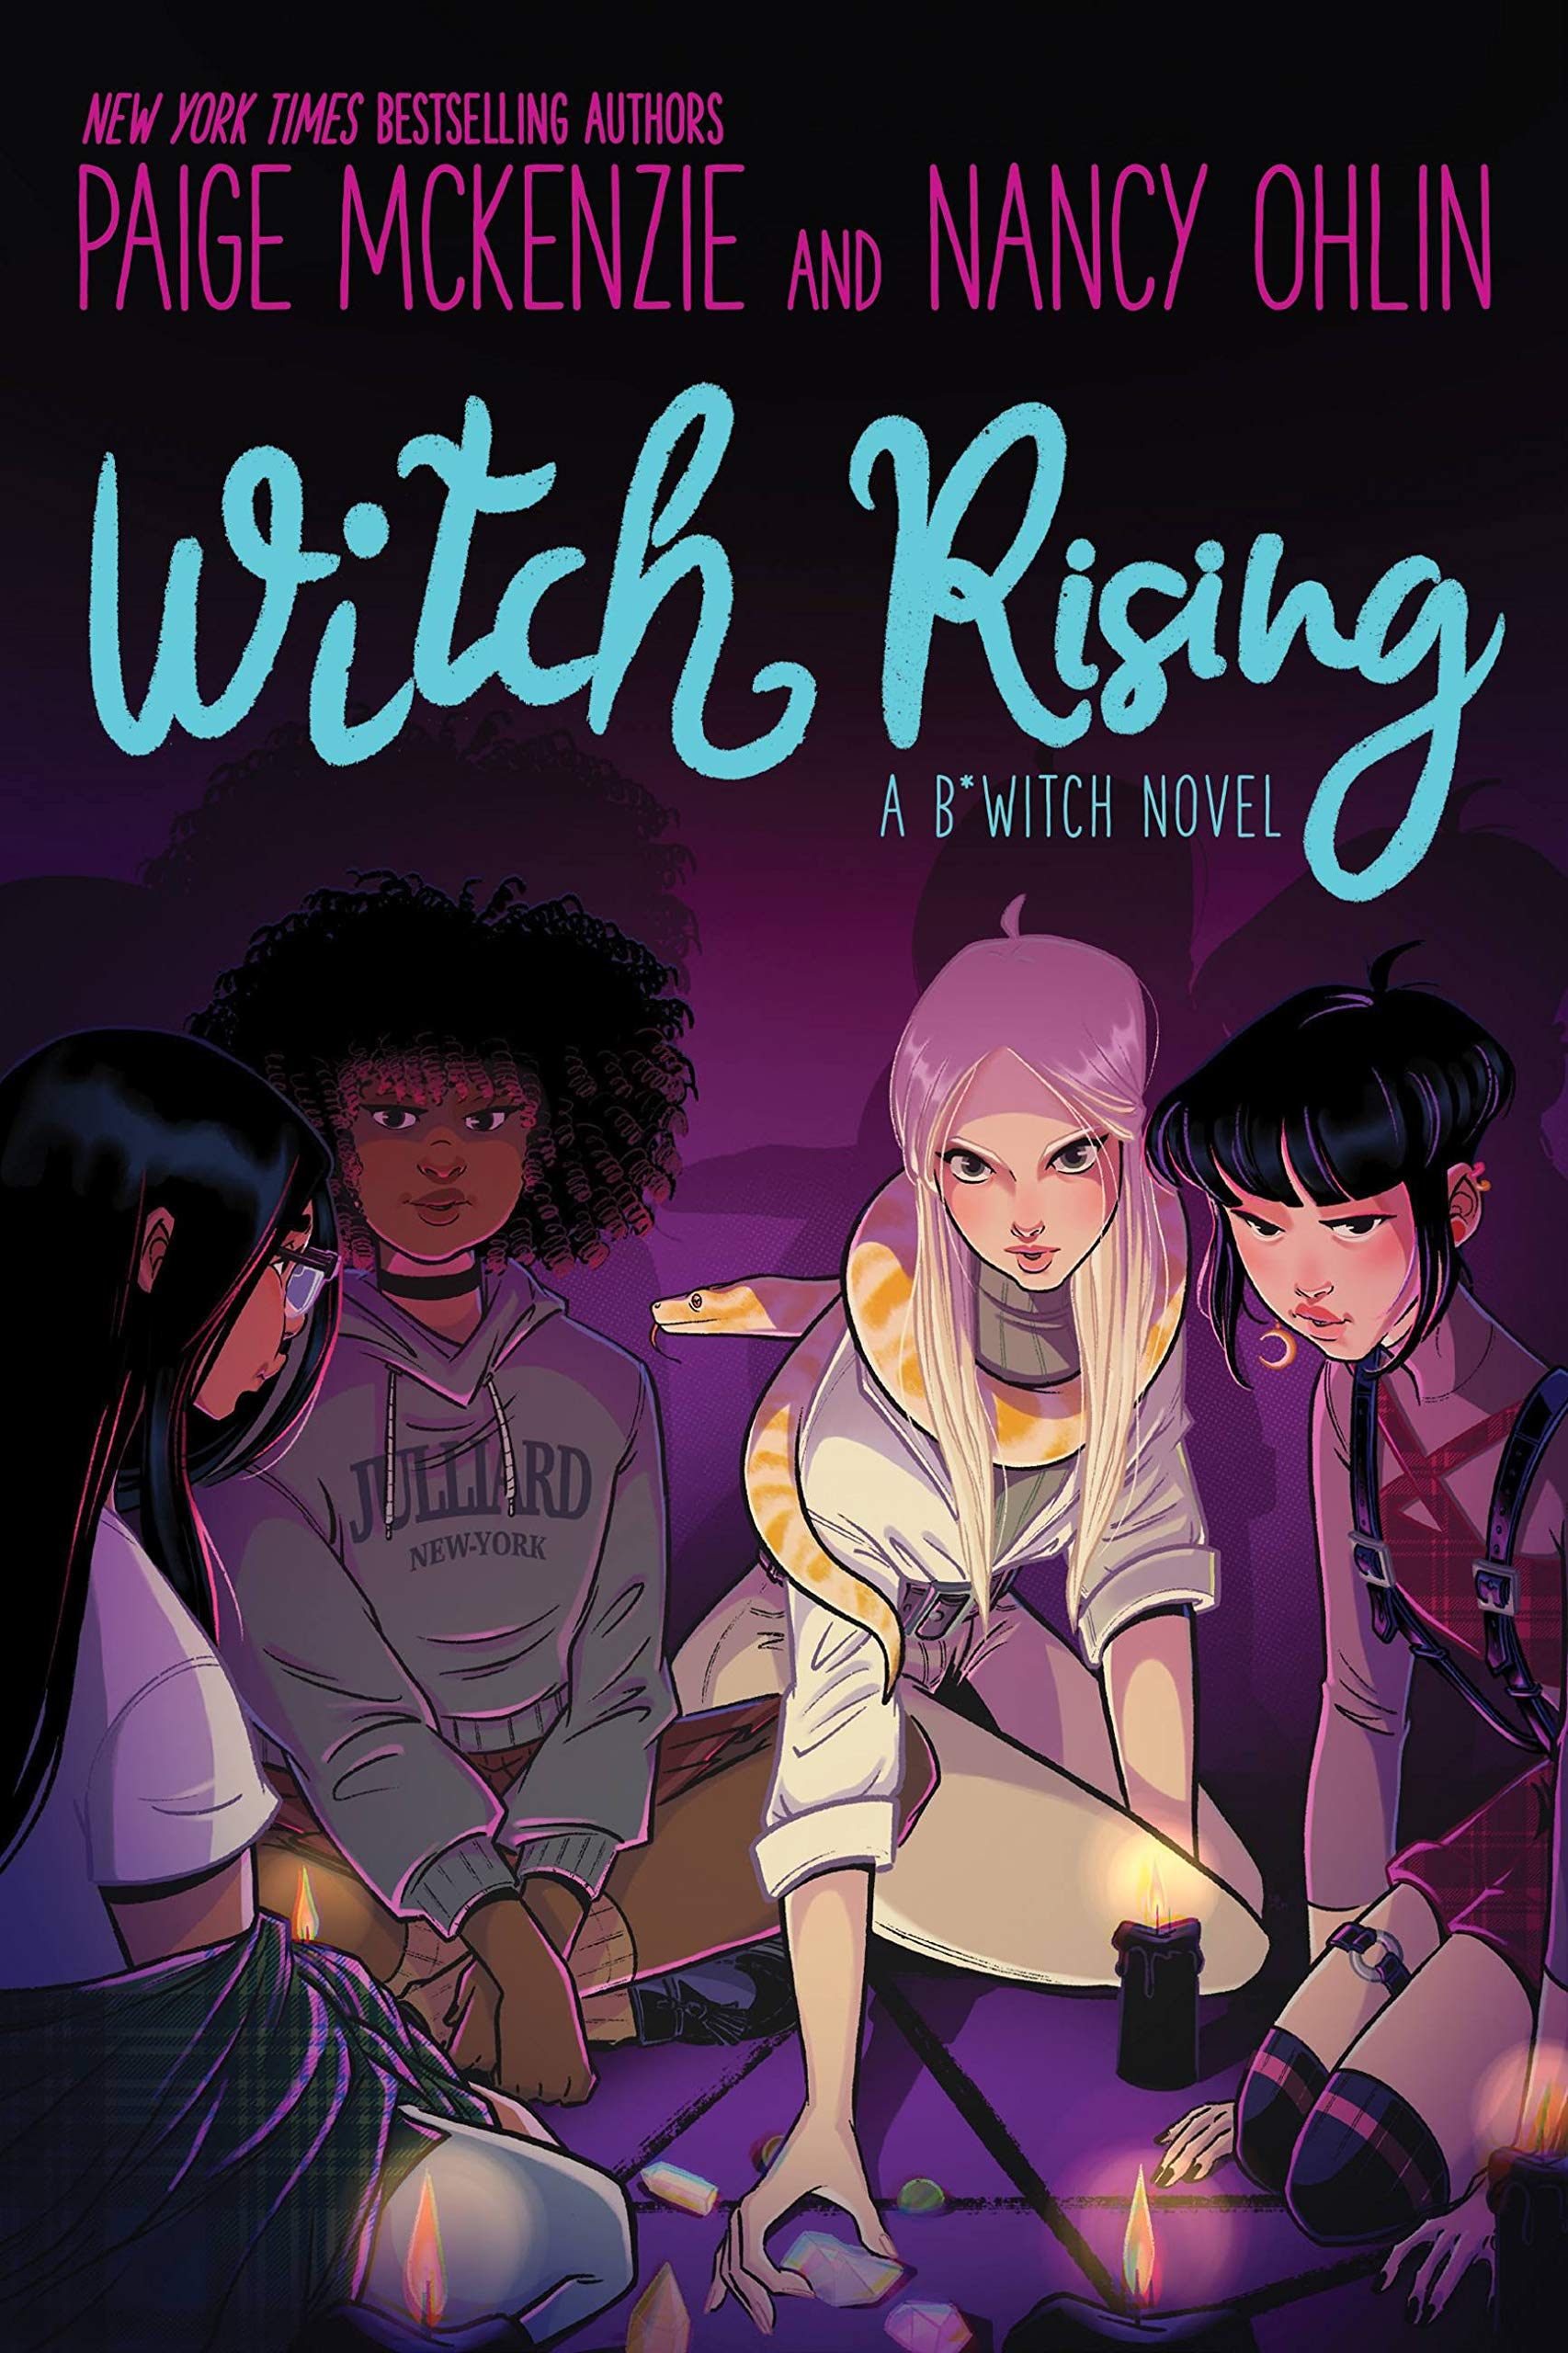 Book cover image with four young women sitting down in the dark with a few candles near them.